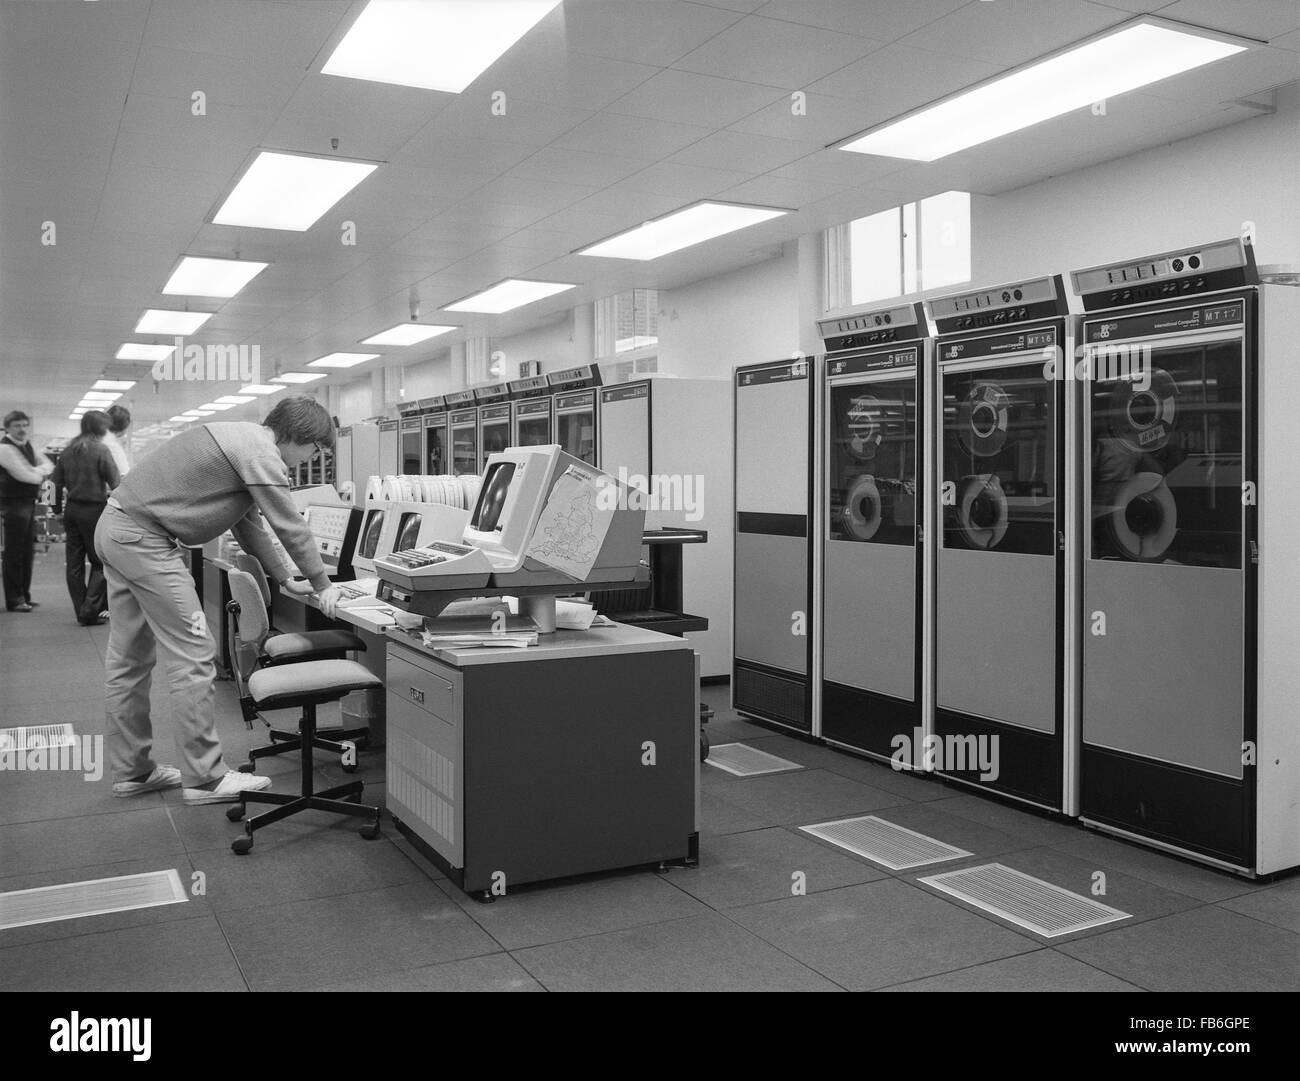 Icl 2900 Series Mainframe Computer Installation And